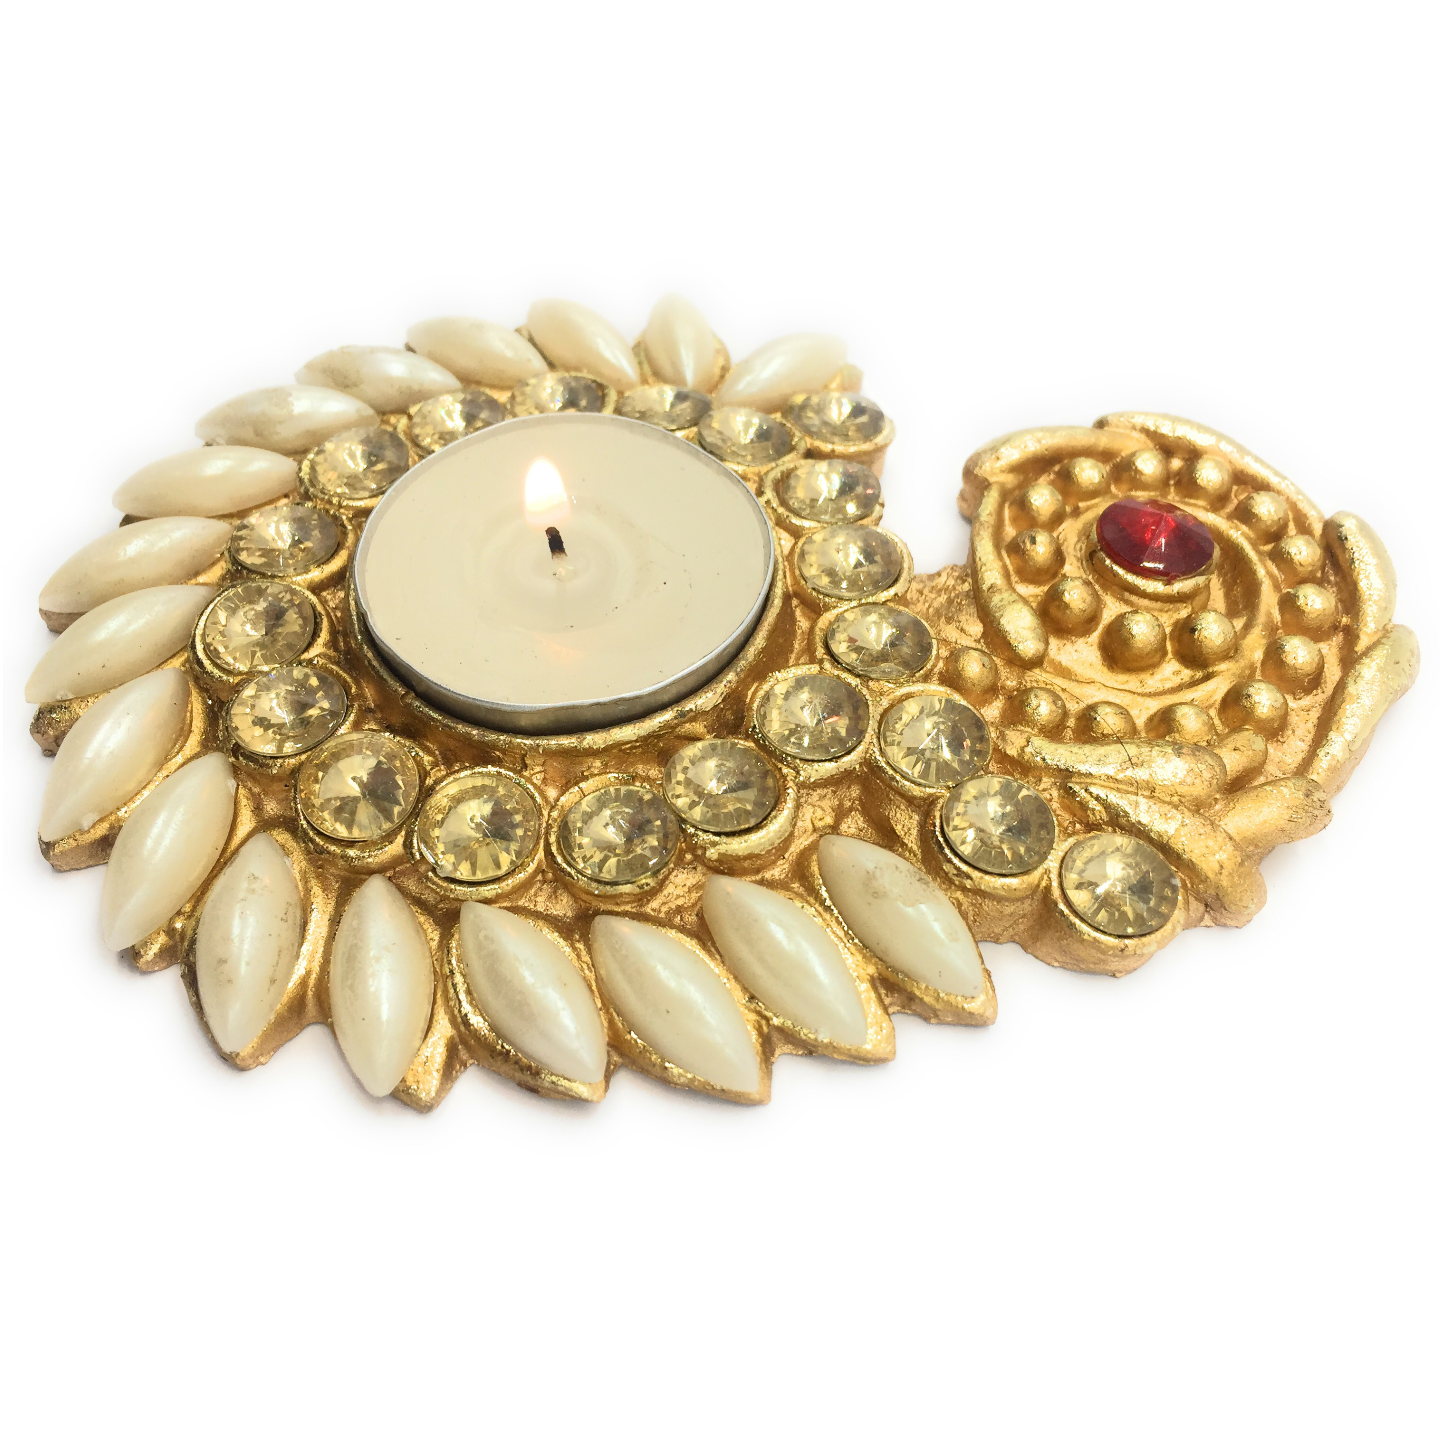 AuraDecor Bead Finish Tealight Holder with a Tealight Free